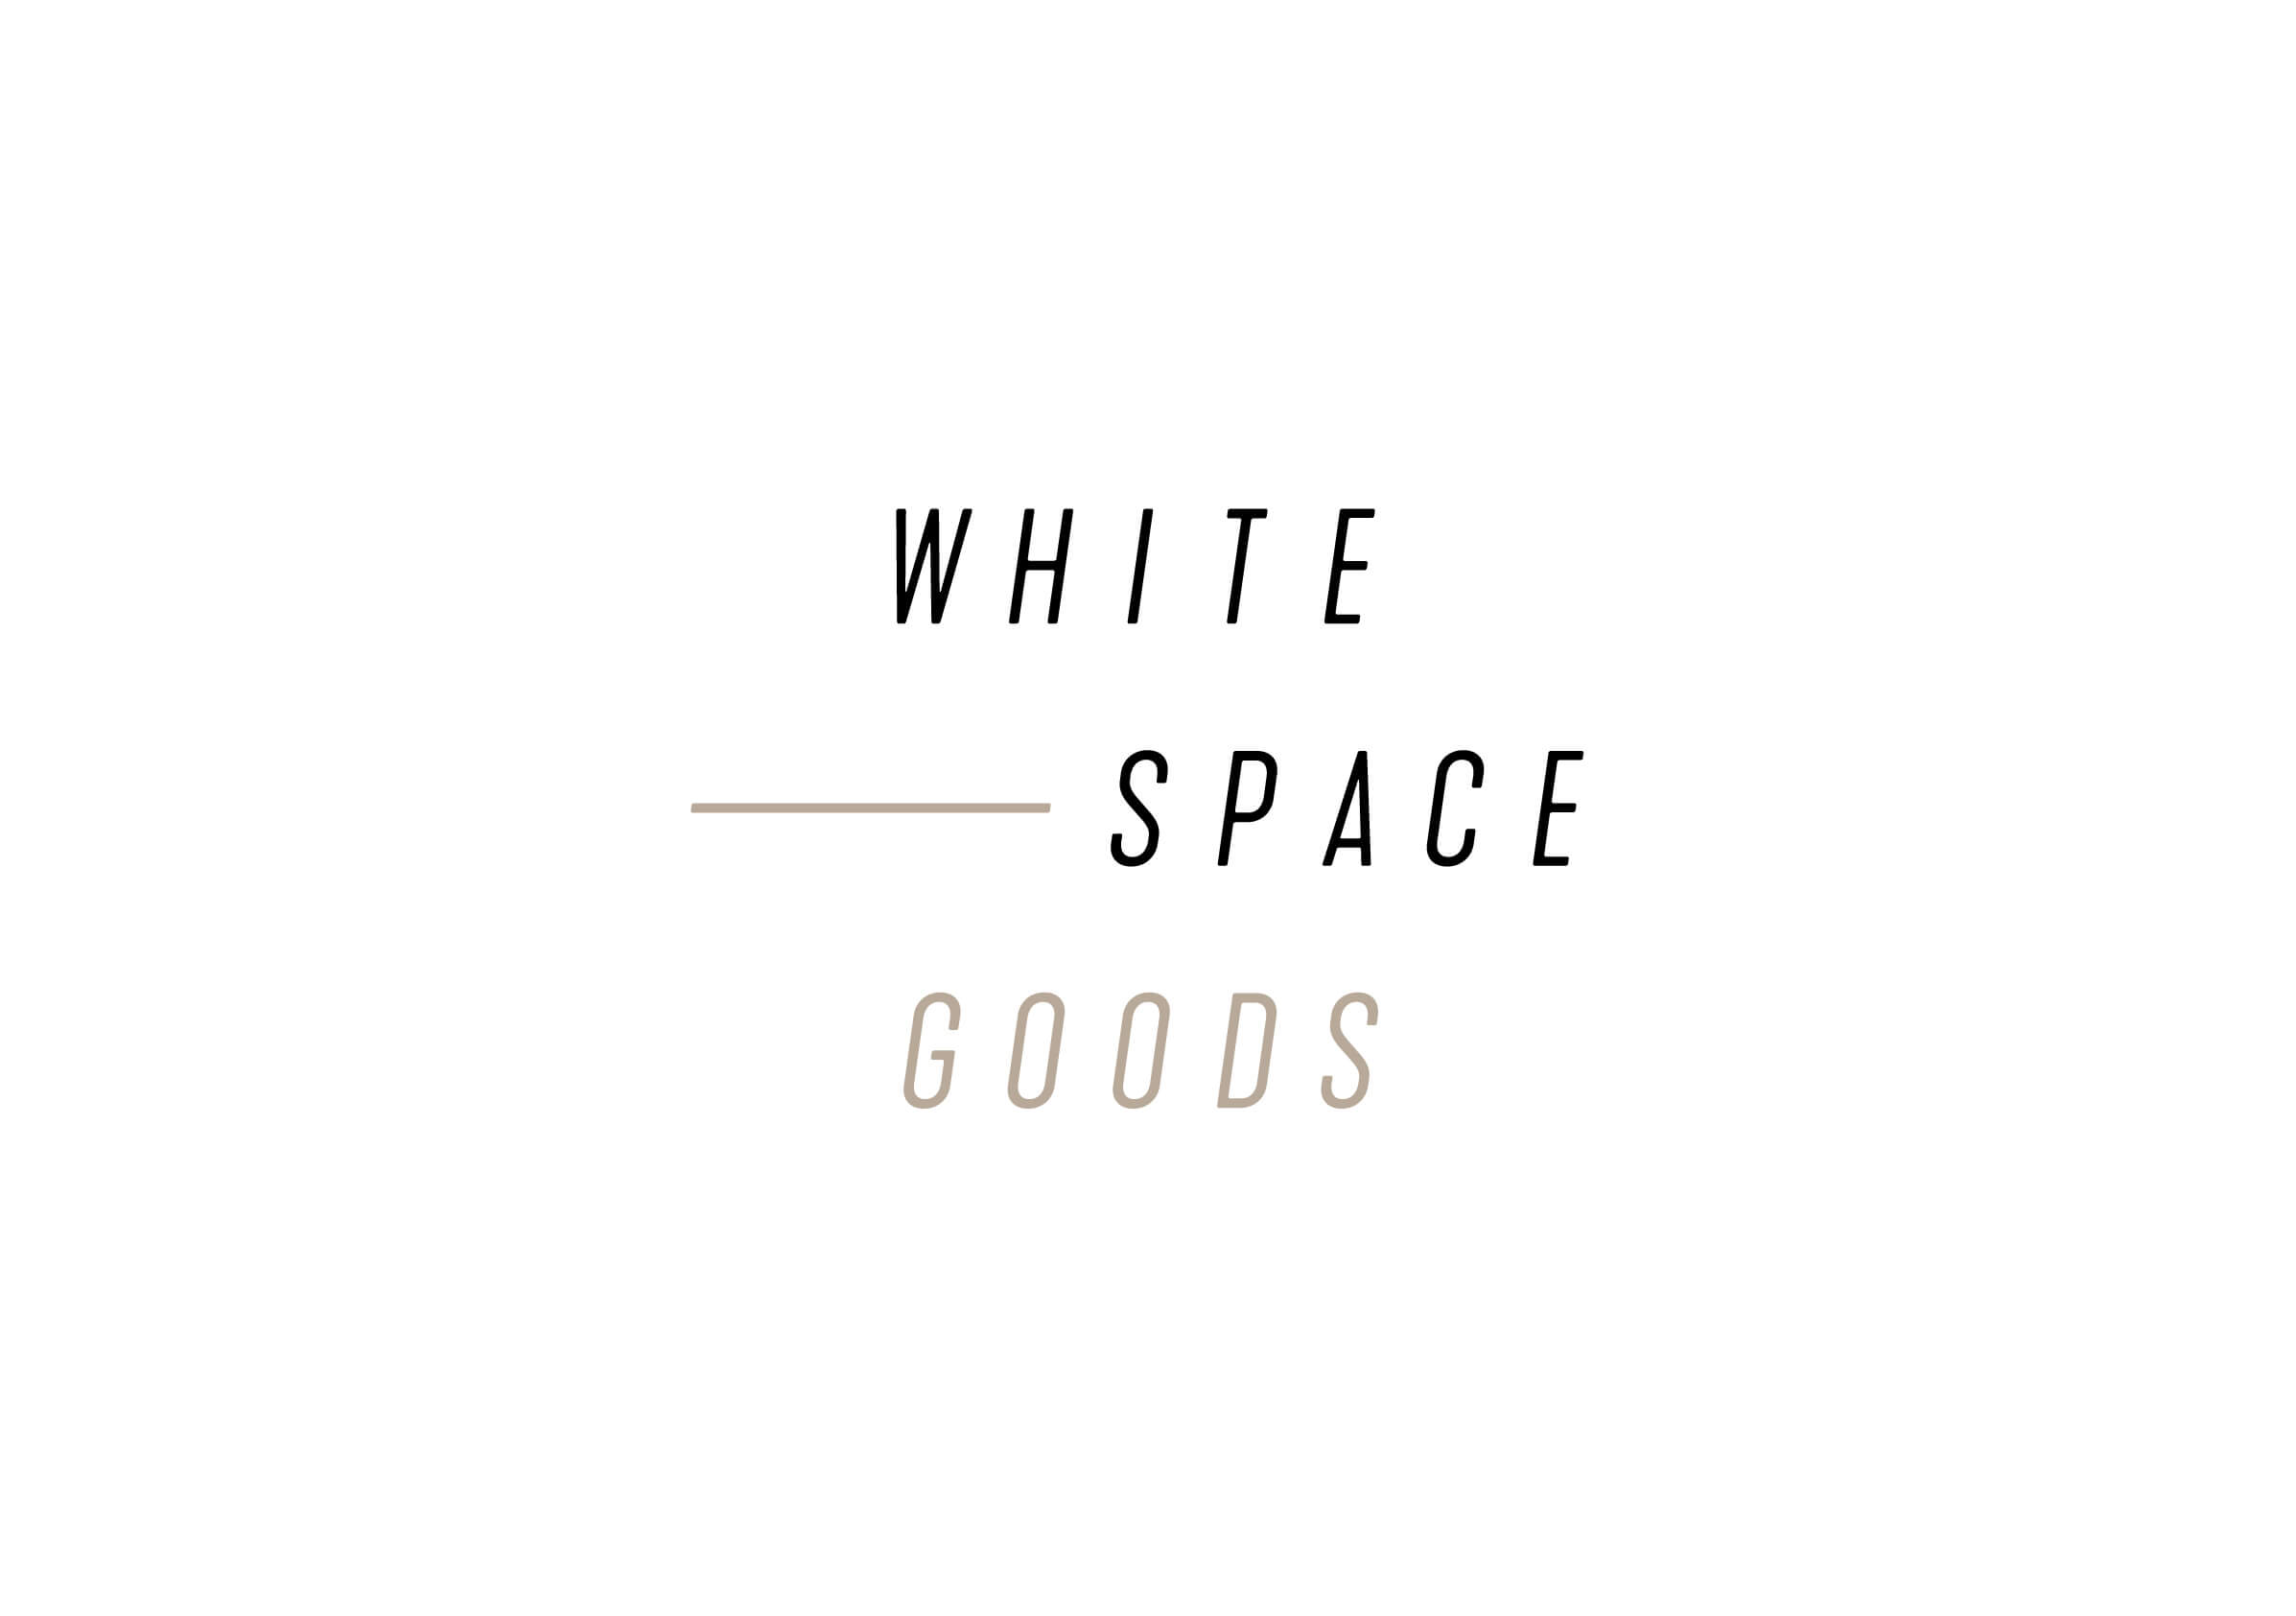 Whitespace Goods logo for Ottawa-based handmade knitware and decor by graphic designer idApostle